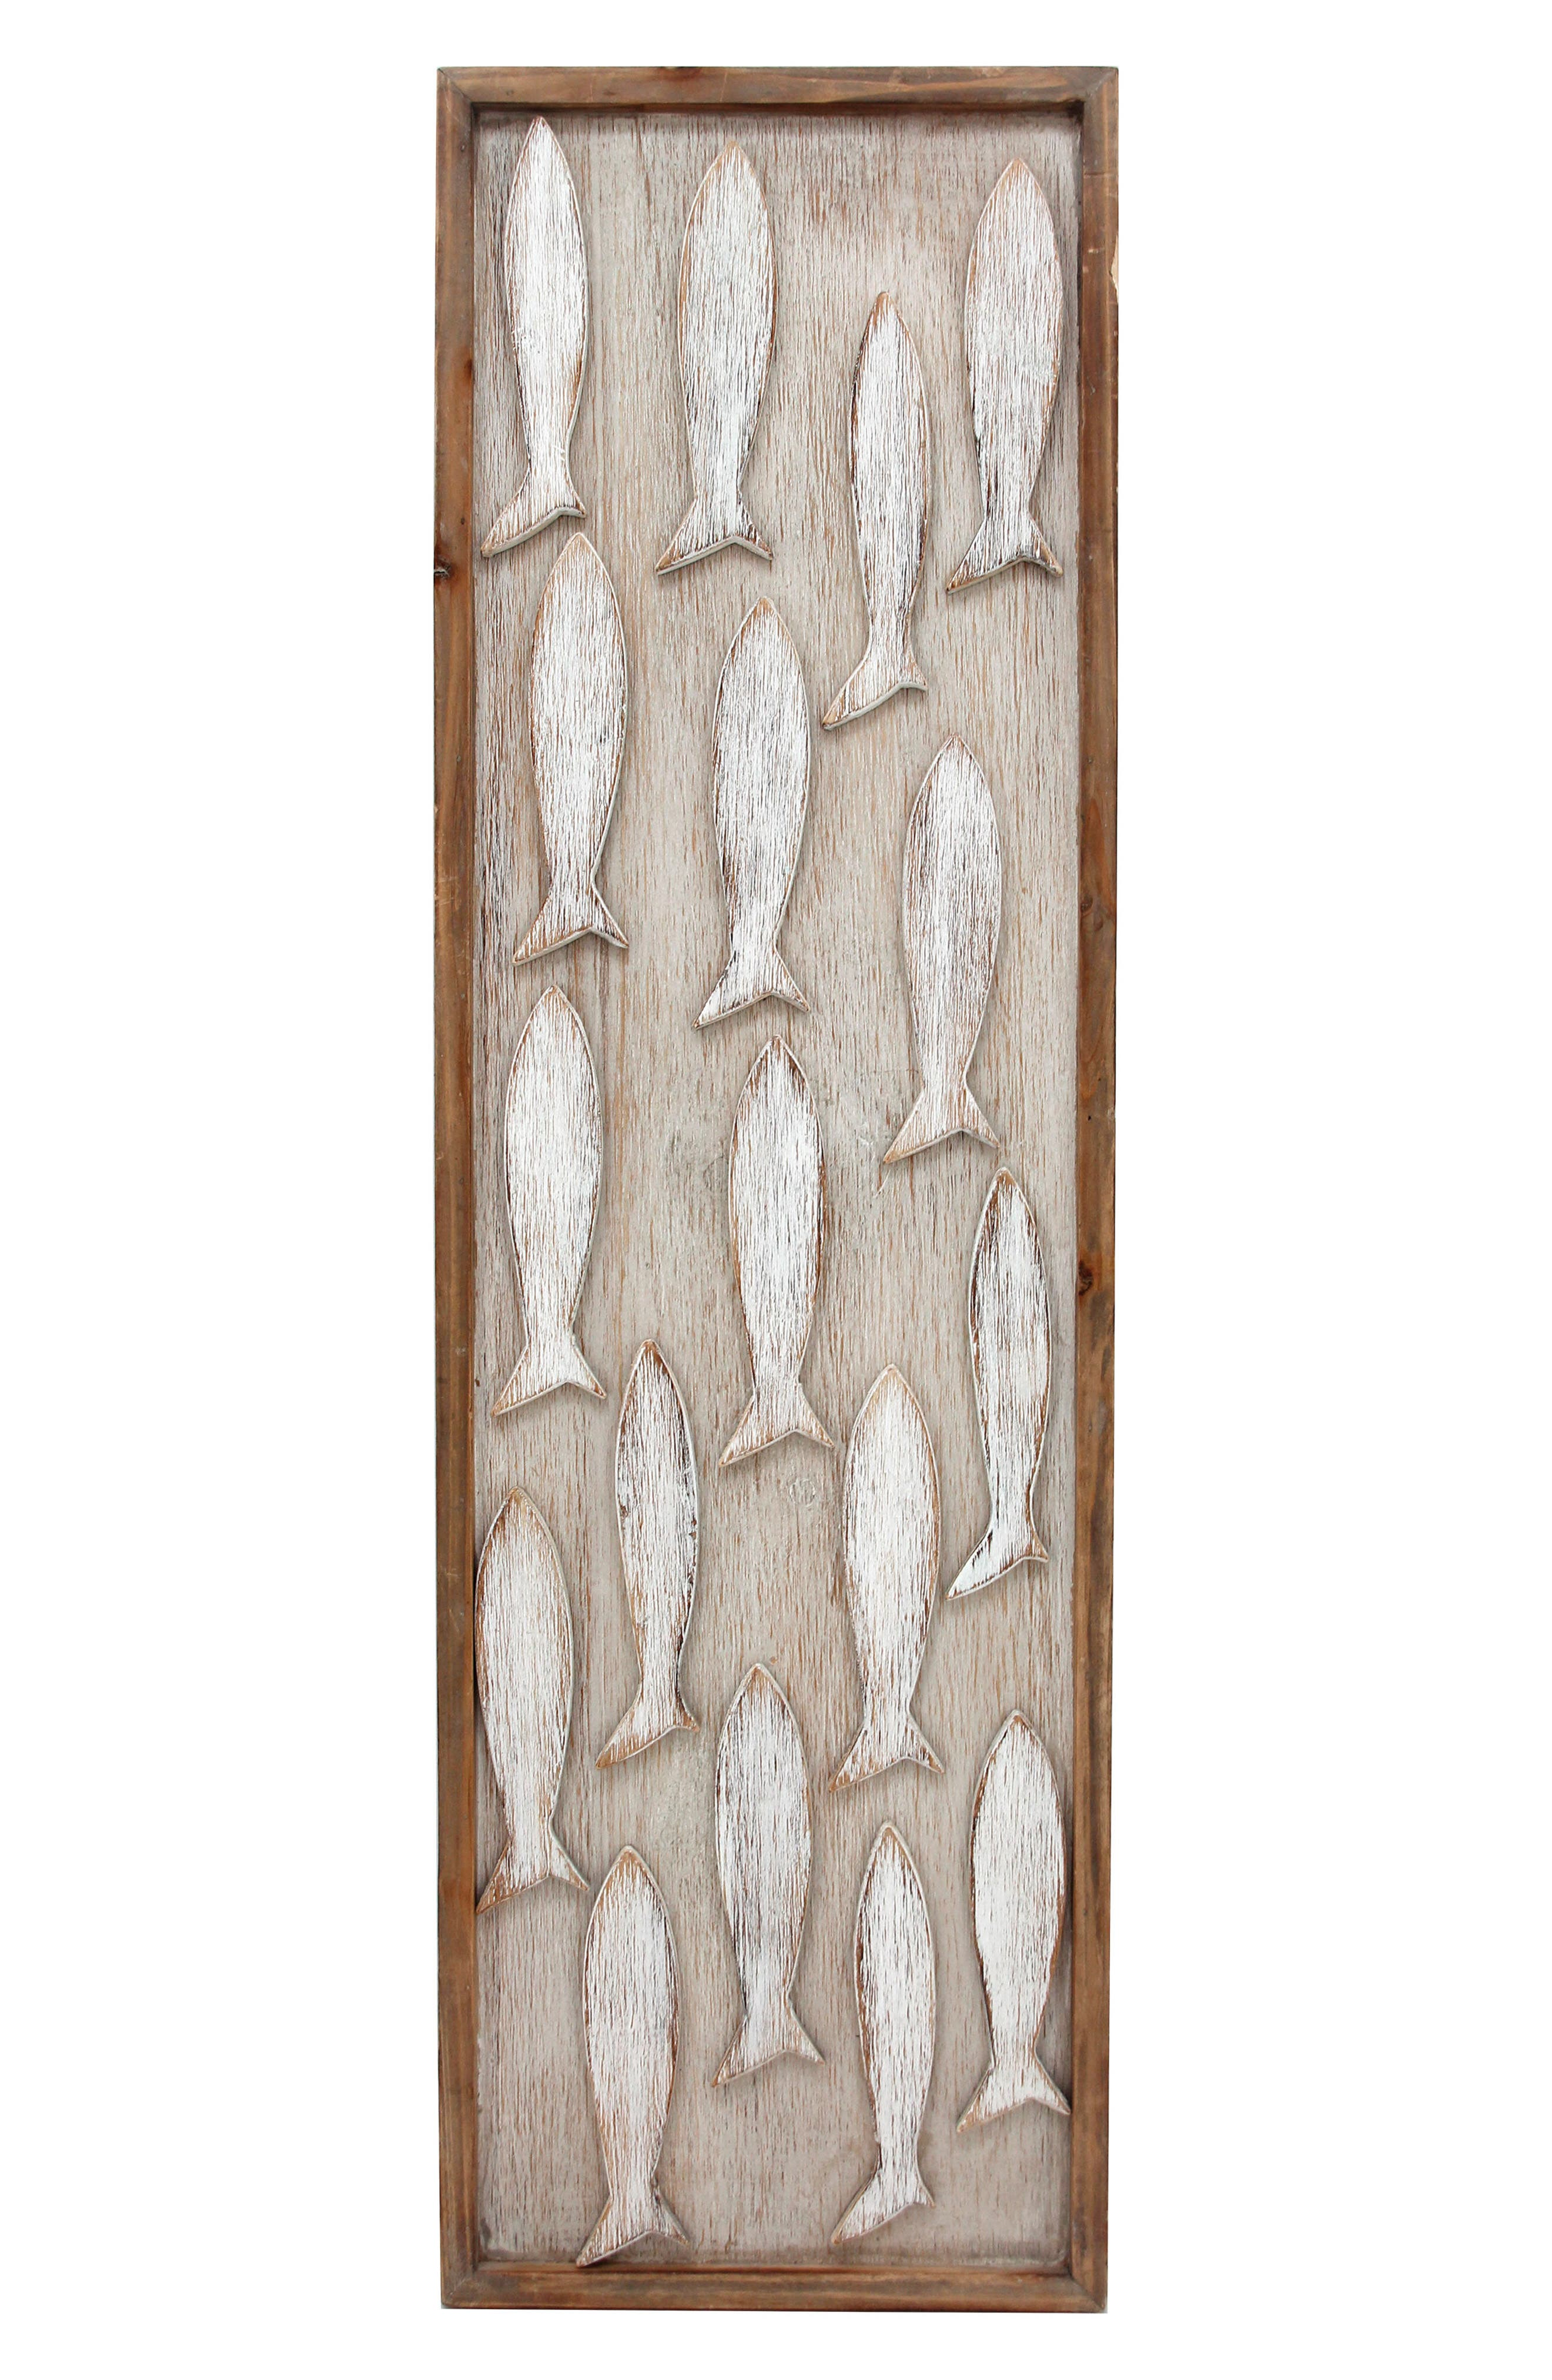 Catch of the Day Wood Wall Art,                             Main thumbnail 1, color,                             100